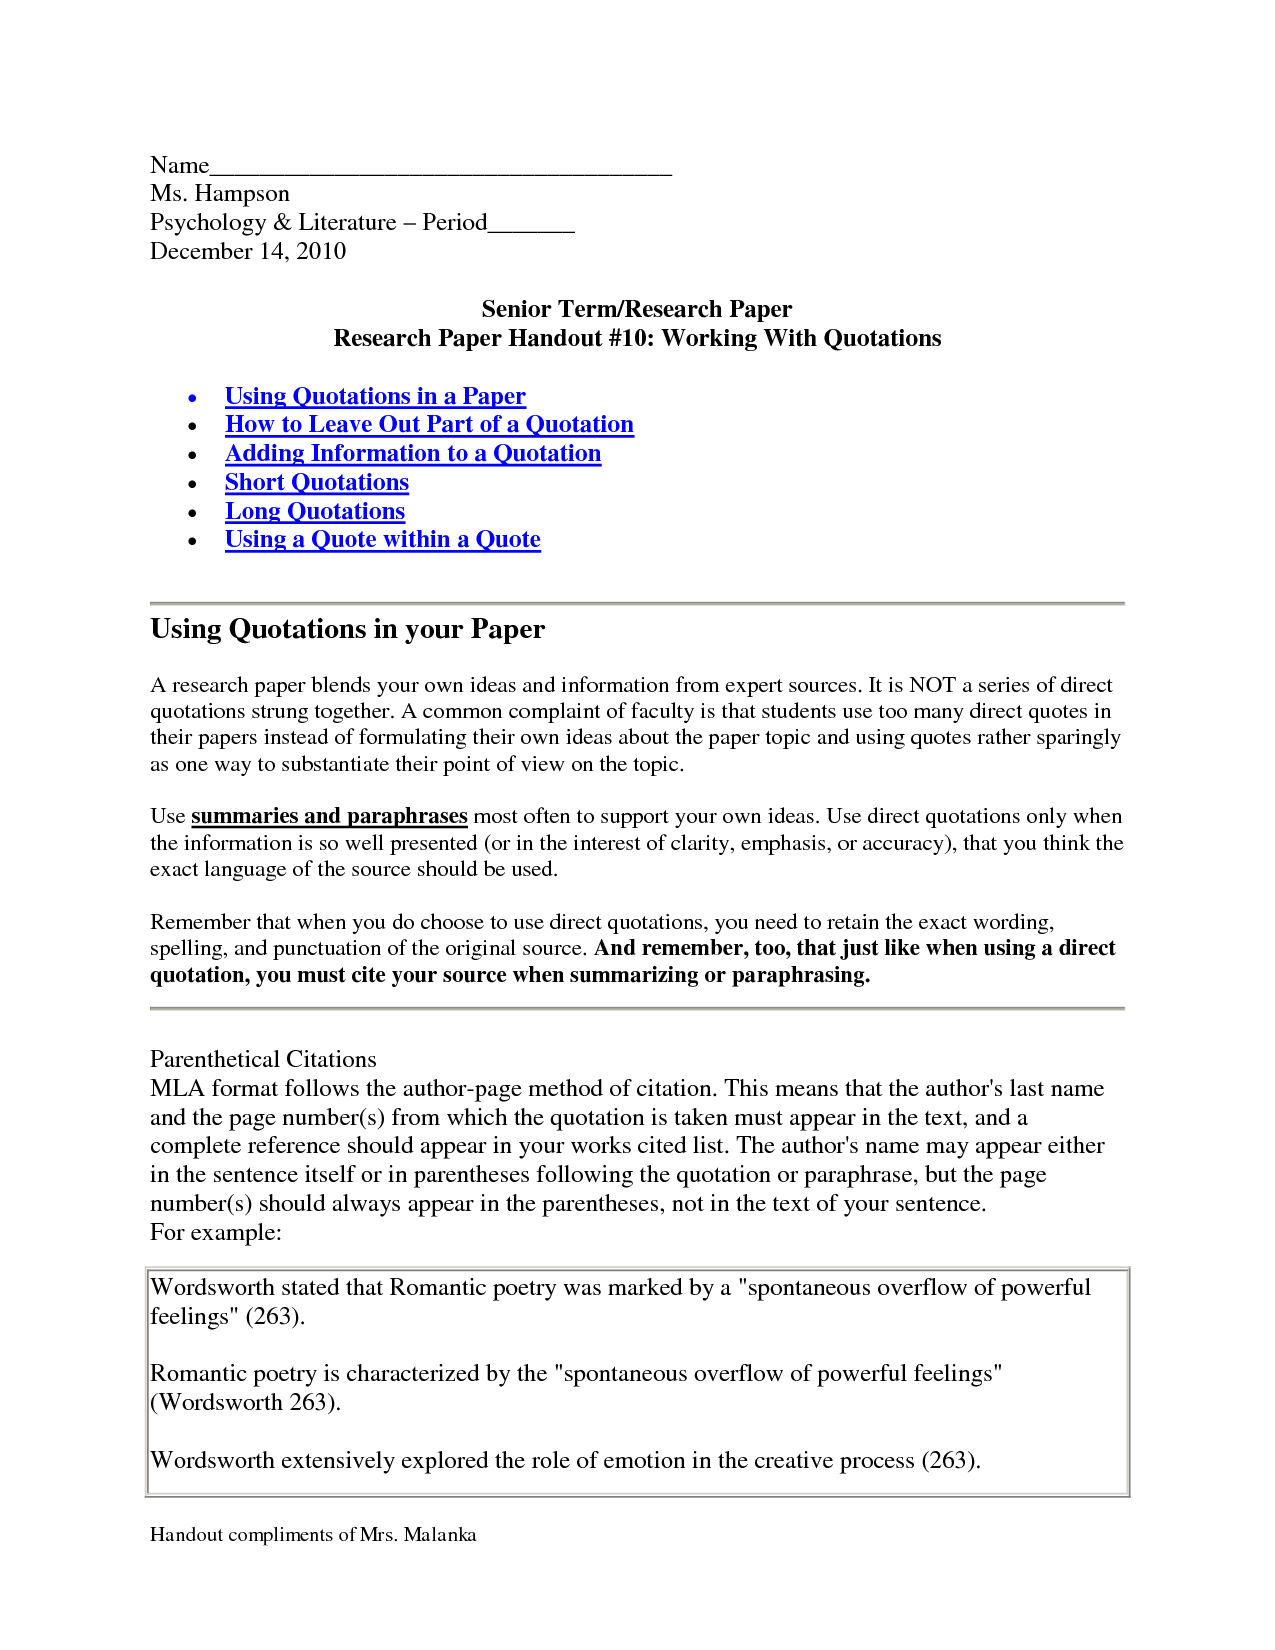 mla research paper quotations Mla style for academic work (2017-2018) this guide is based on the mla handbook, 8th ed, modern language association of america, 2016 the purpose of citing sources.